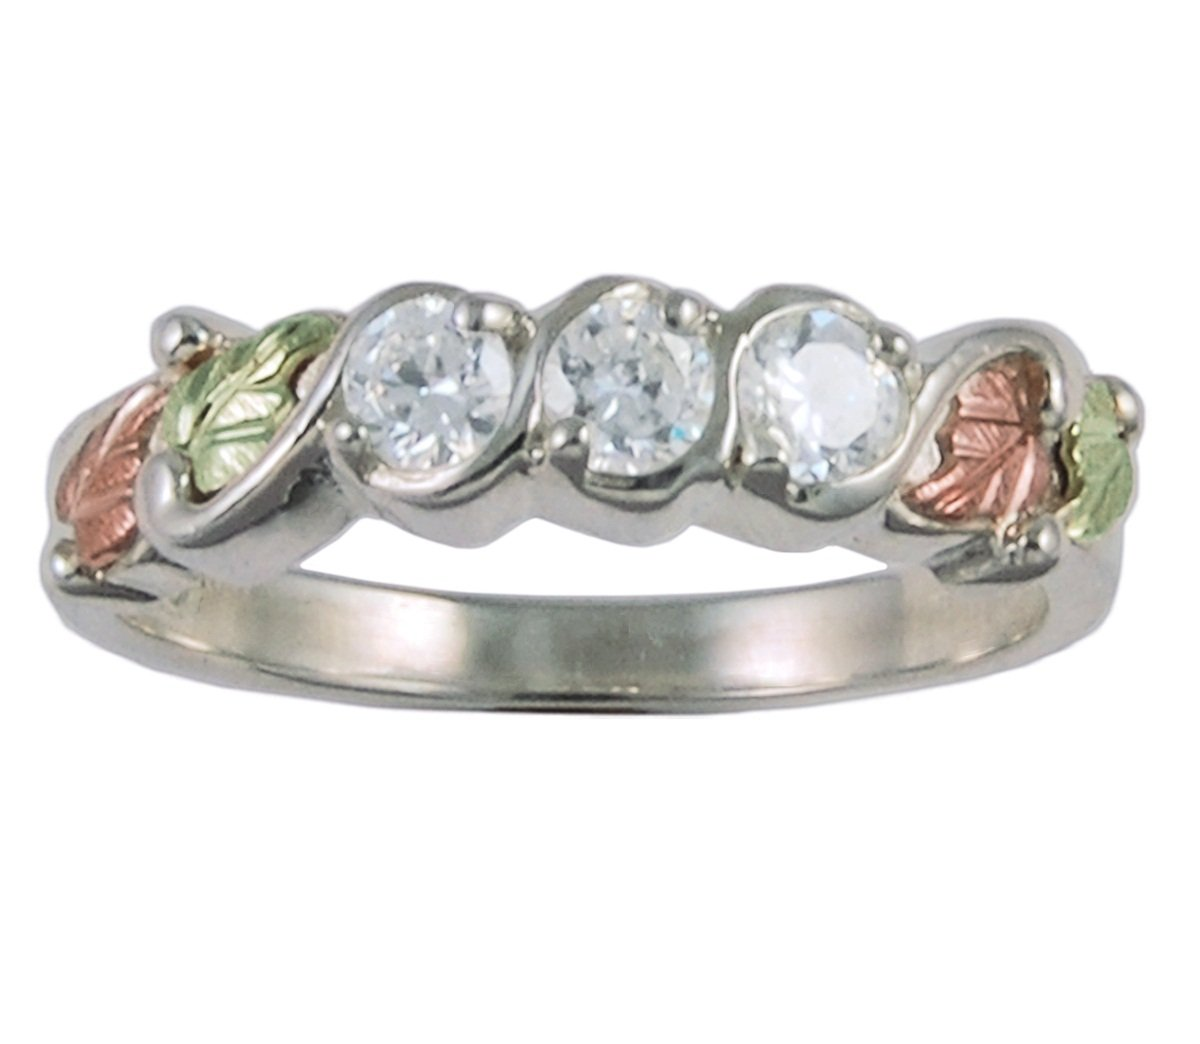 Past, Present Future CZ Band, Sterling Silver, 12k Green and Rose Gold Black Hills Gold Motif, Size 6